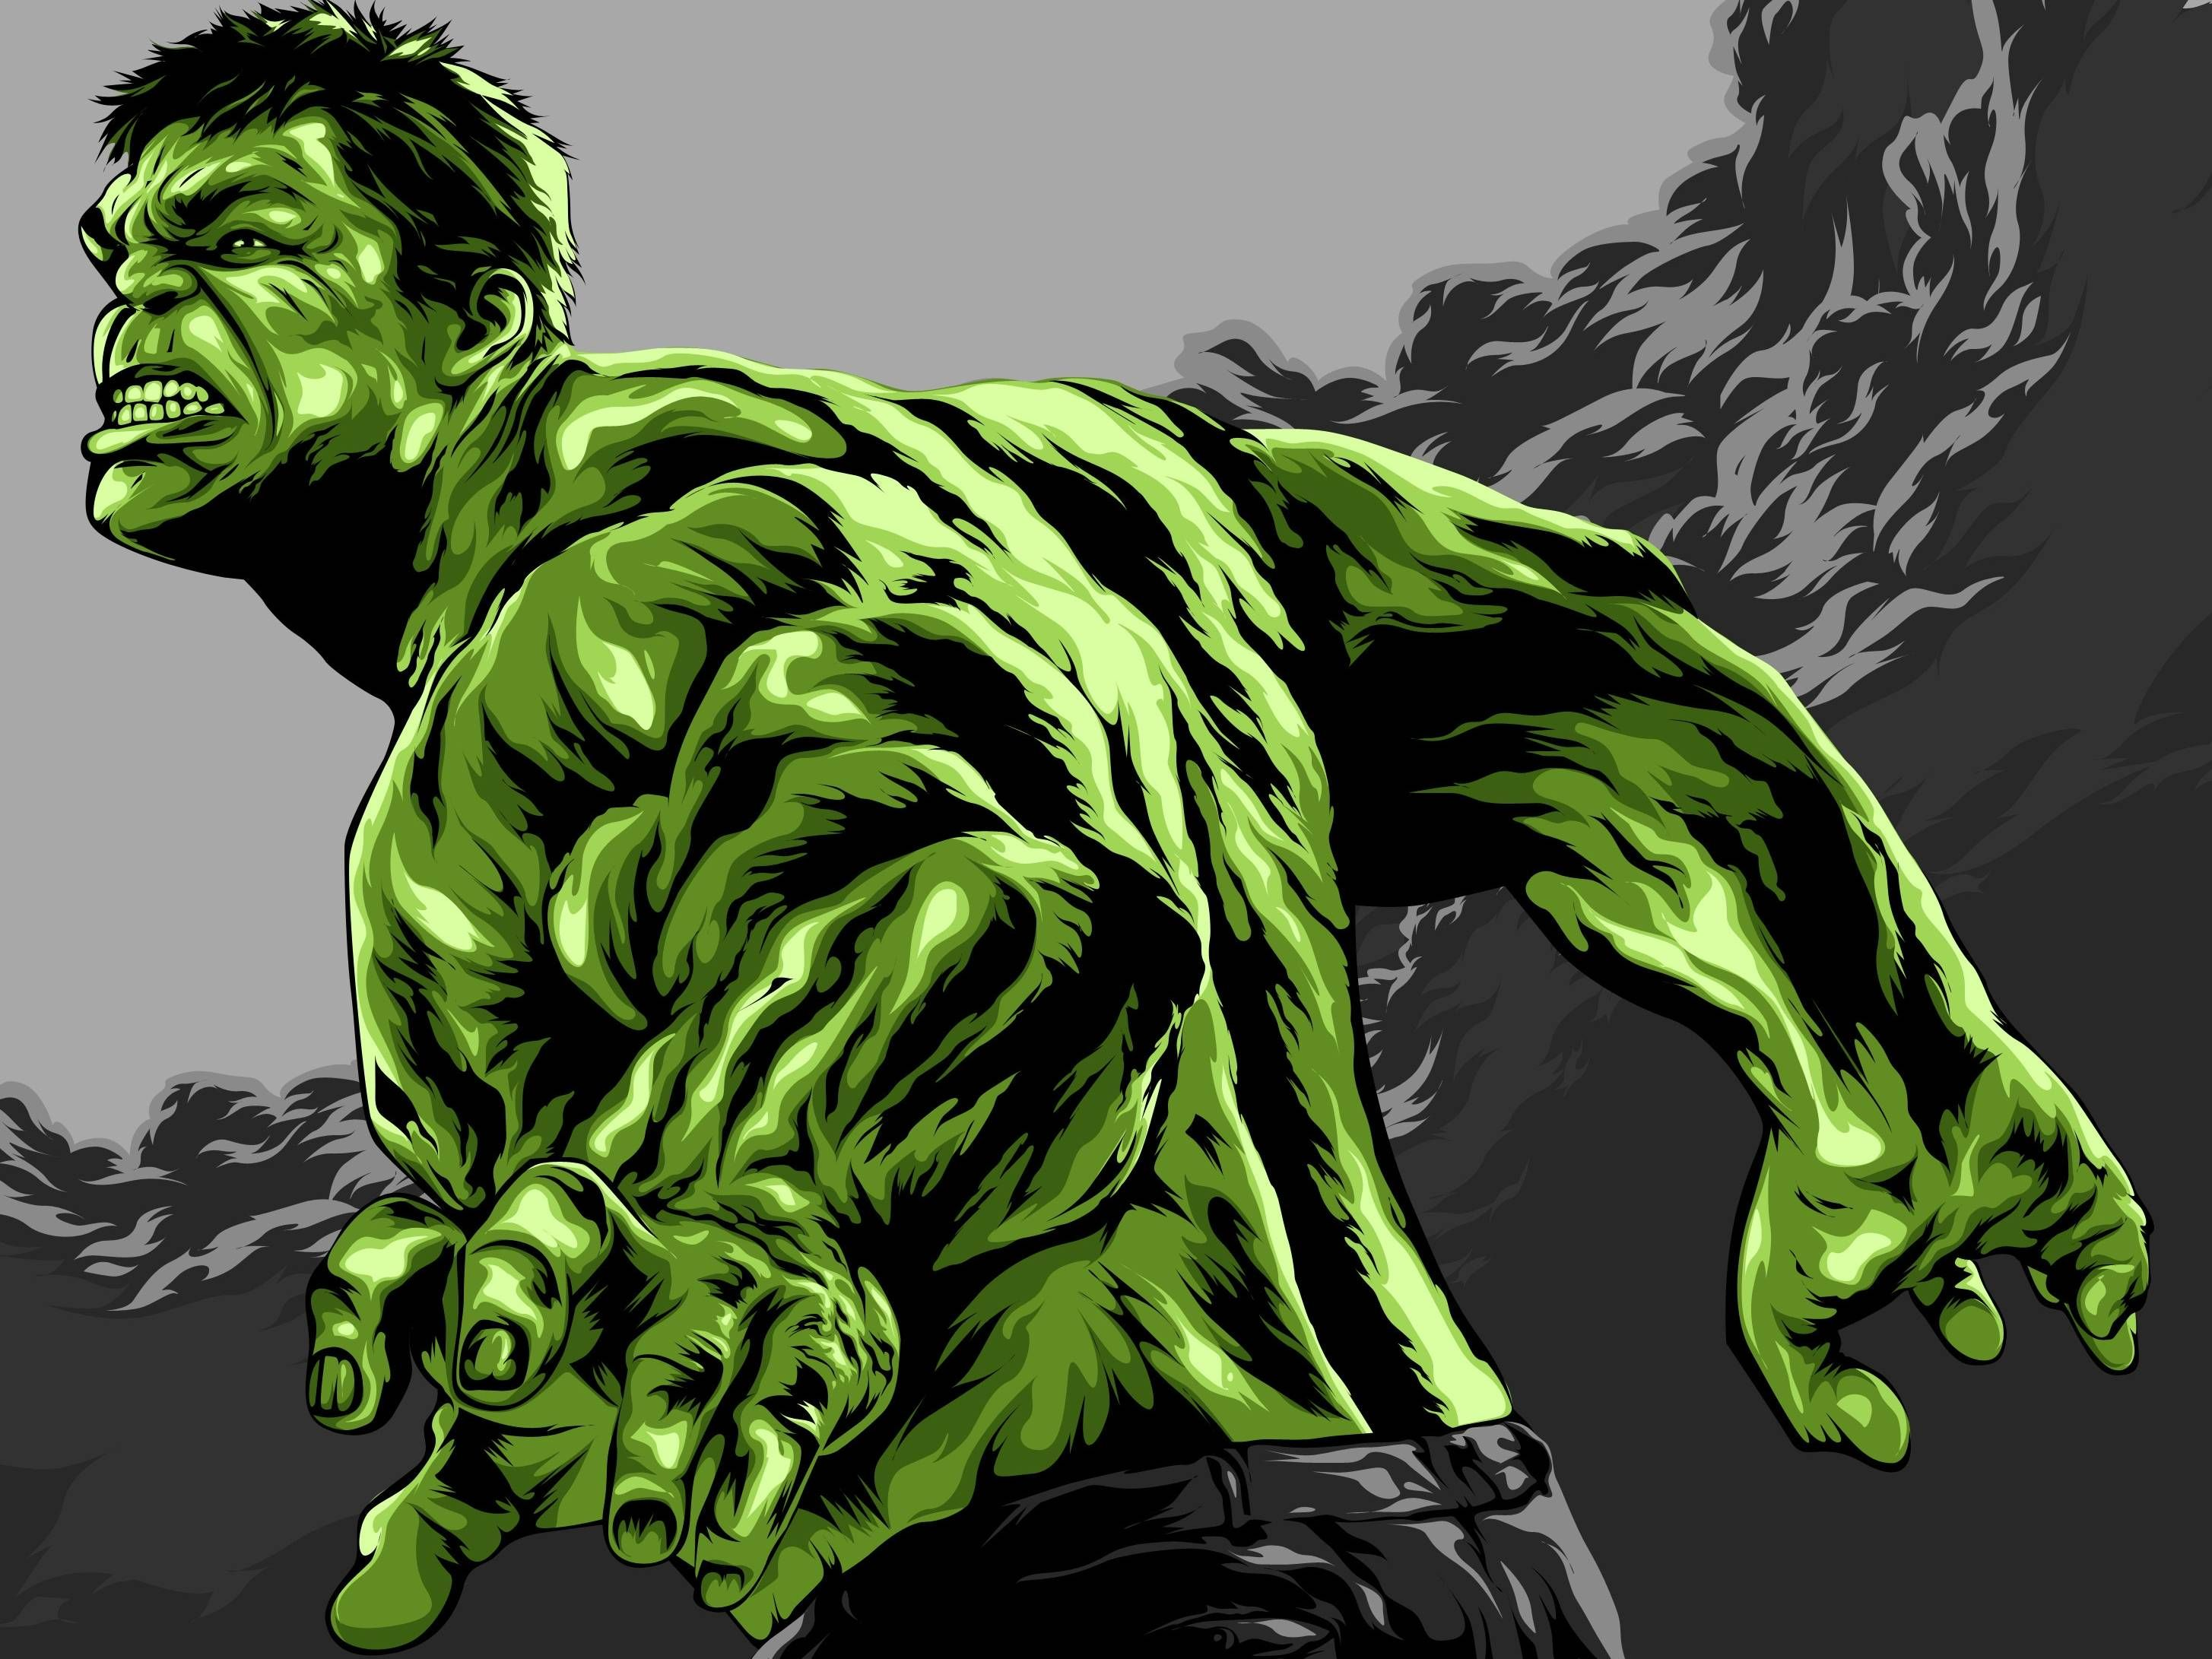 Hulk Wallpapers Wallpaper Hulk, Cómics, Monstruos verdes